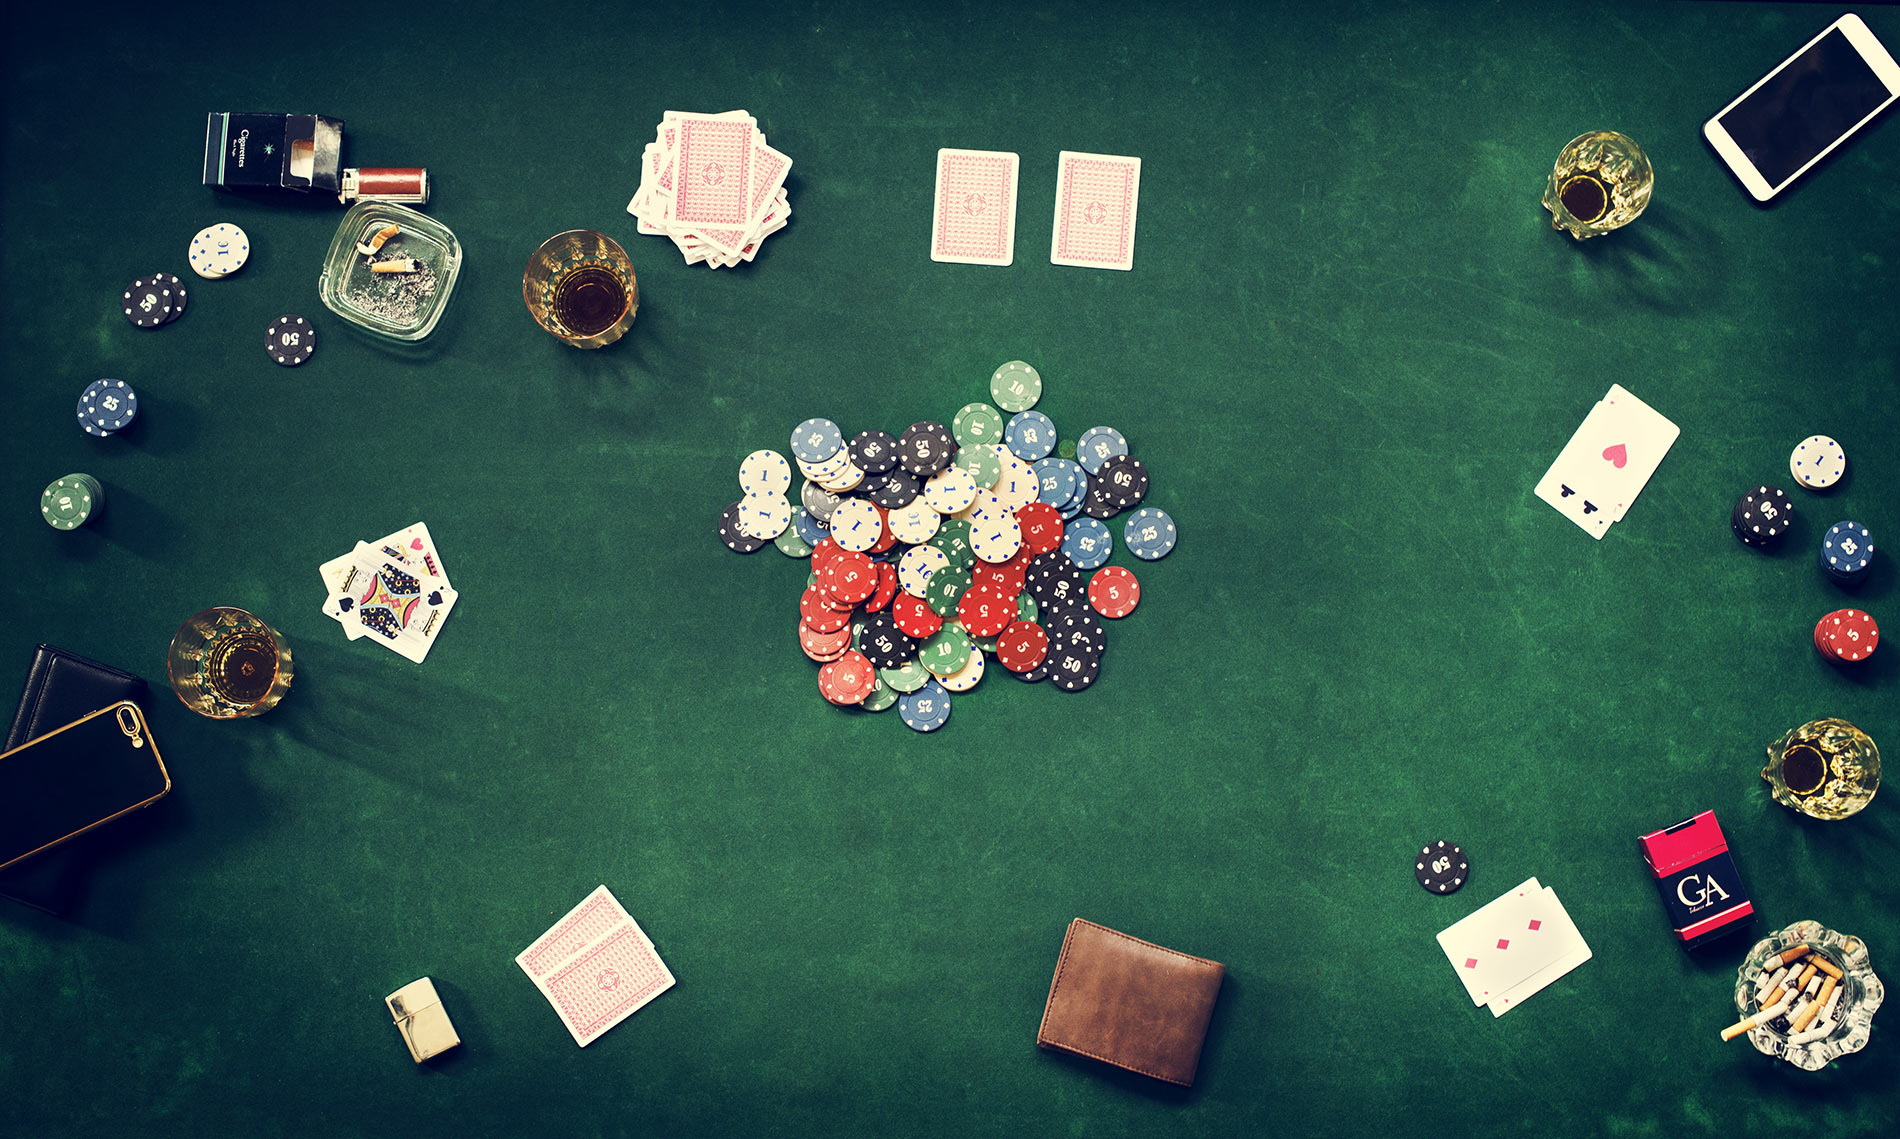 gamble-in-casino-betting-PCYF6S9.jpg